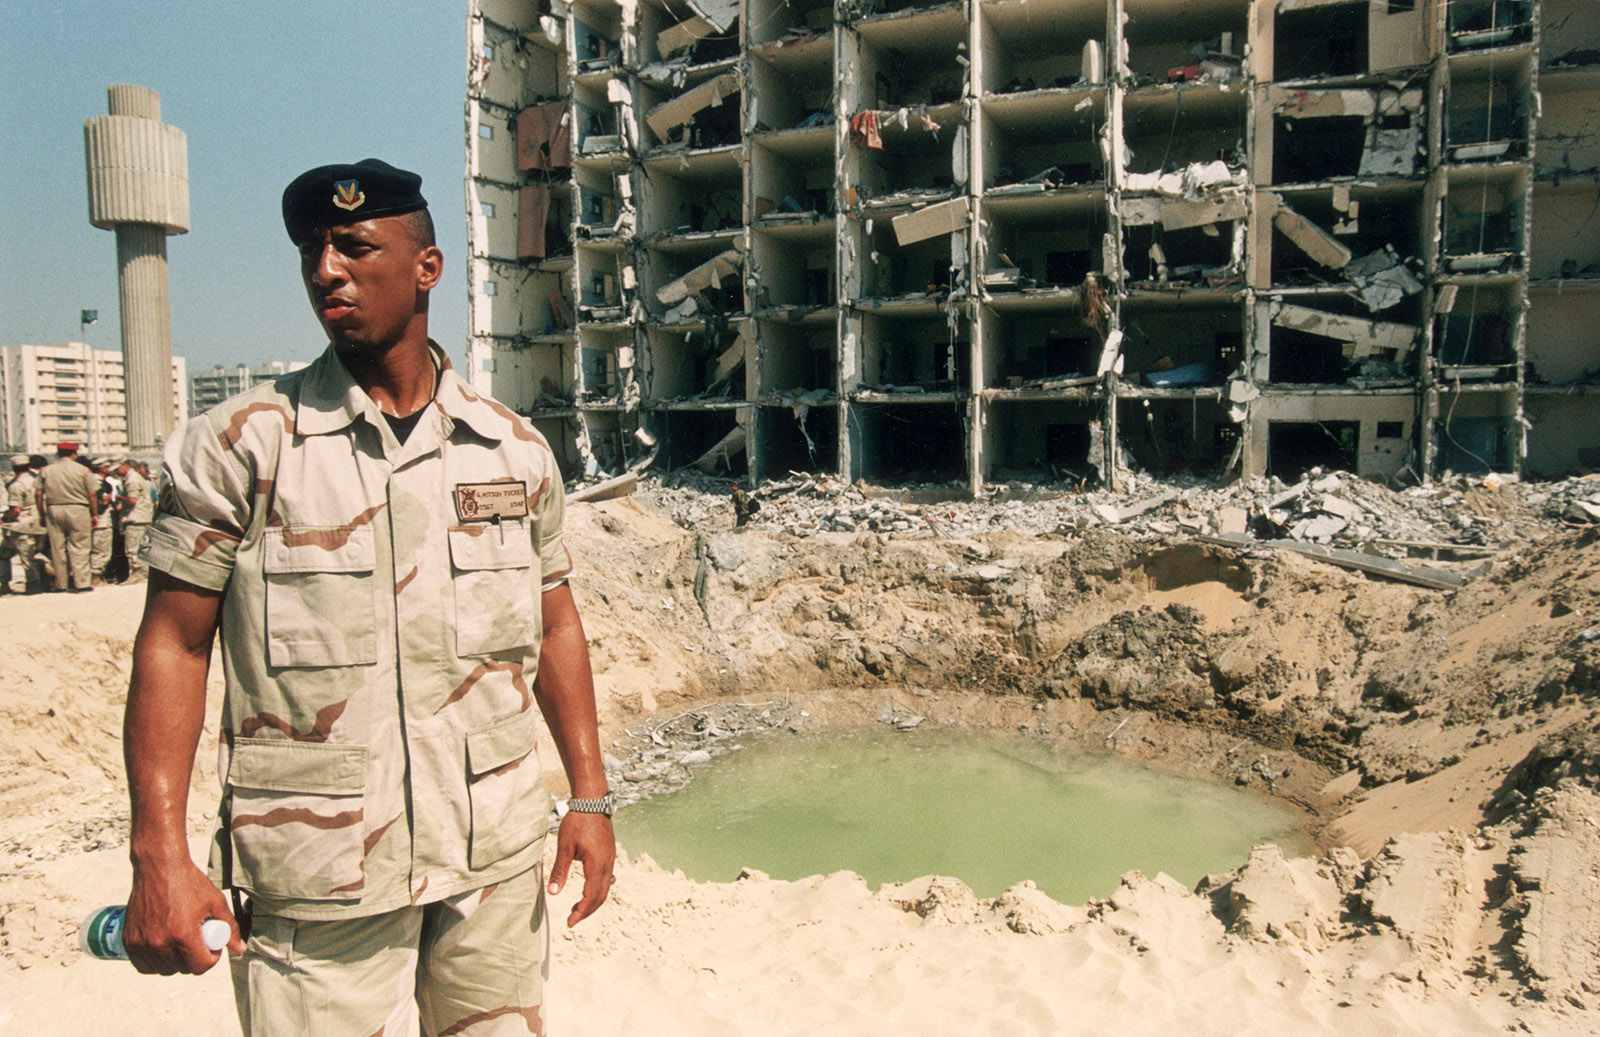 A US Air Force sergeant standing next to the terrorist bomb crater at Khobar Towers, 1996